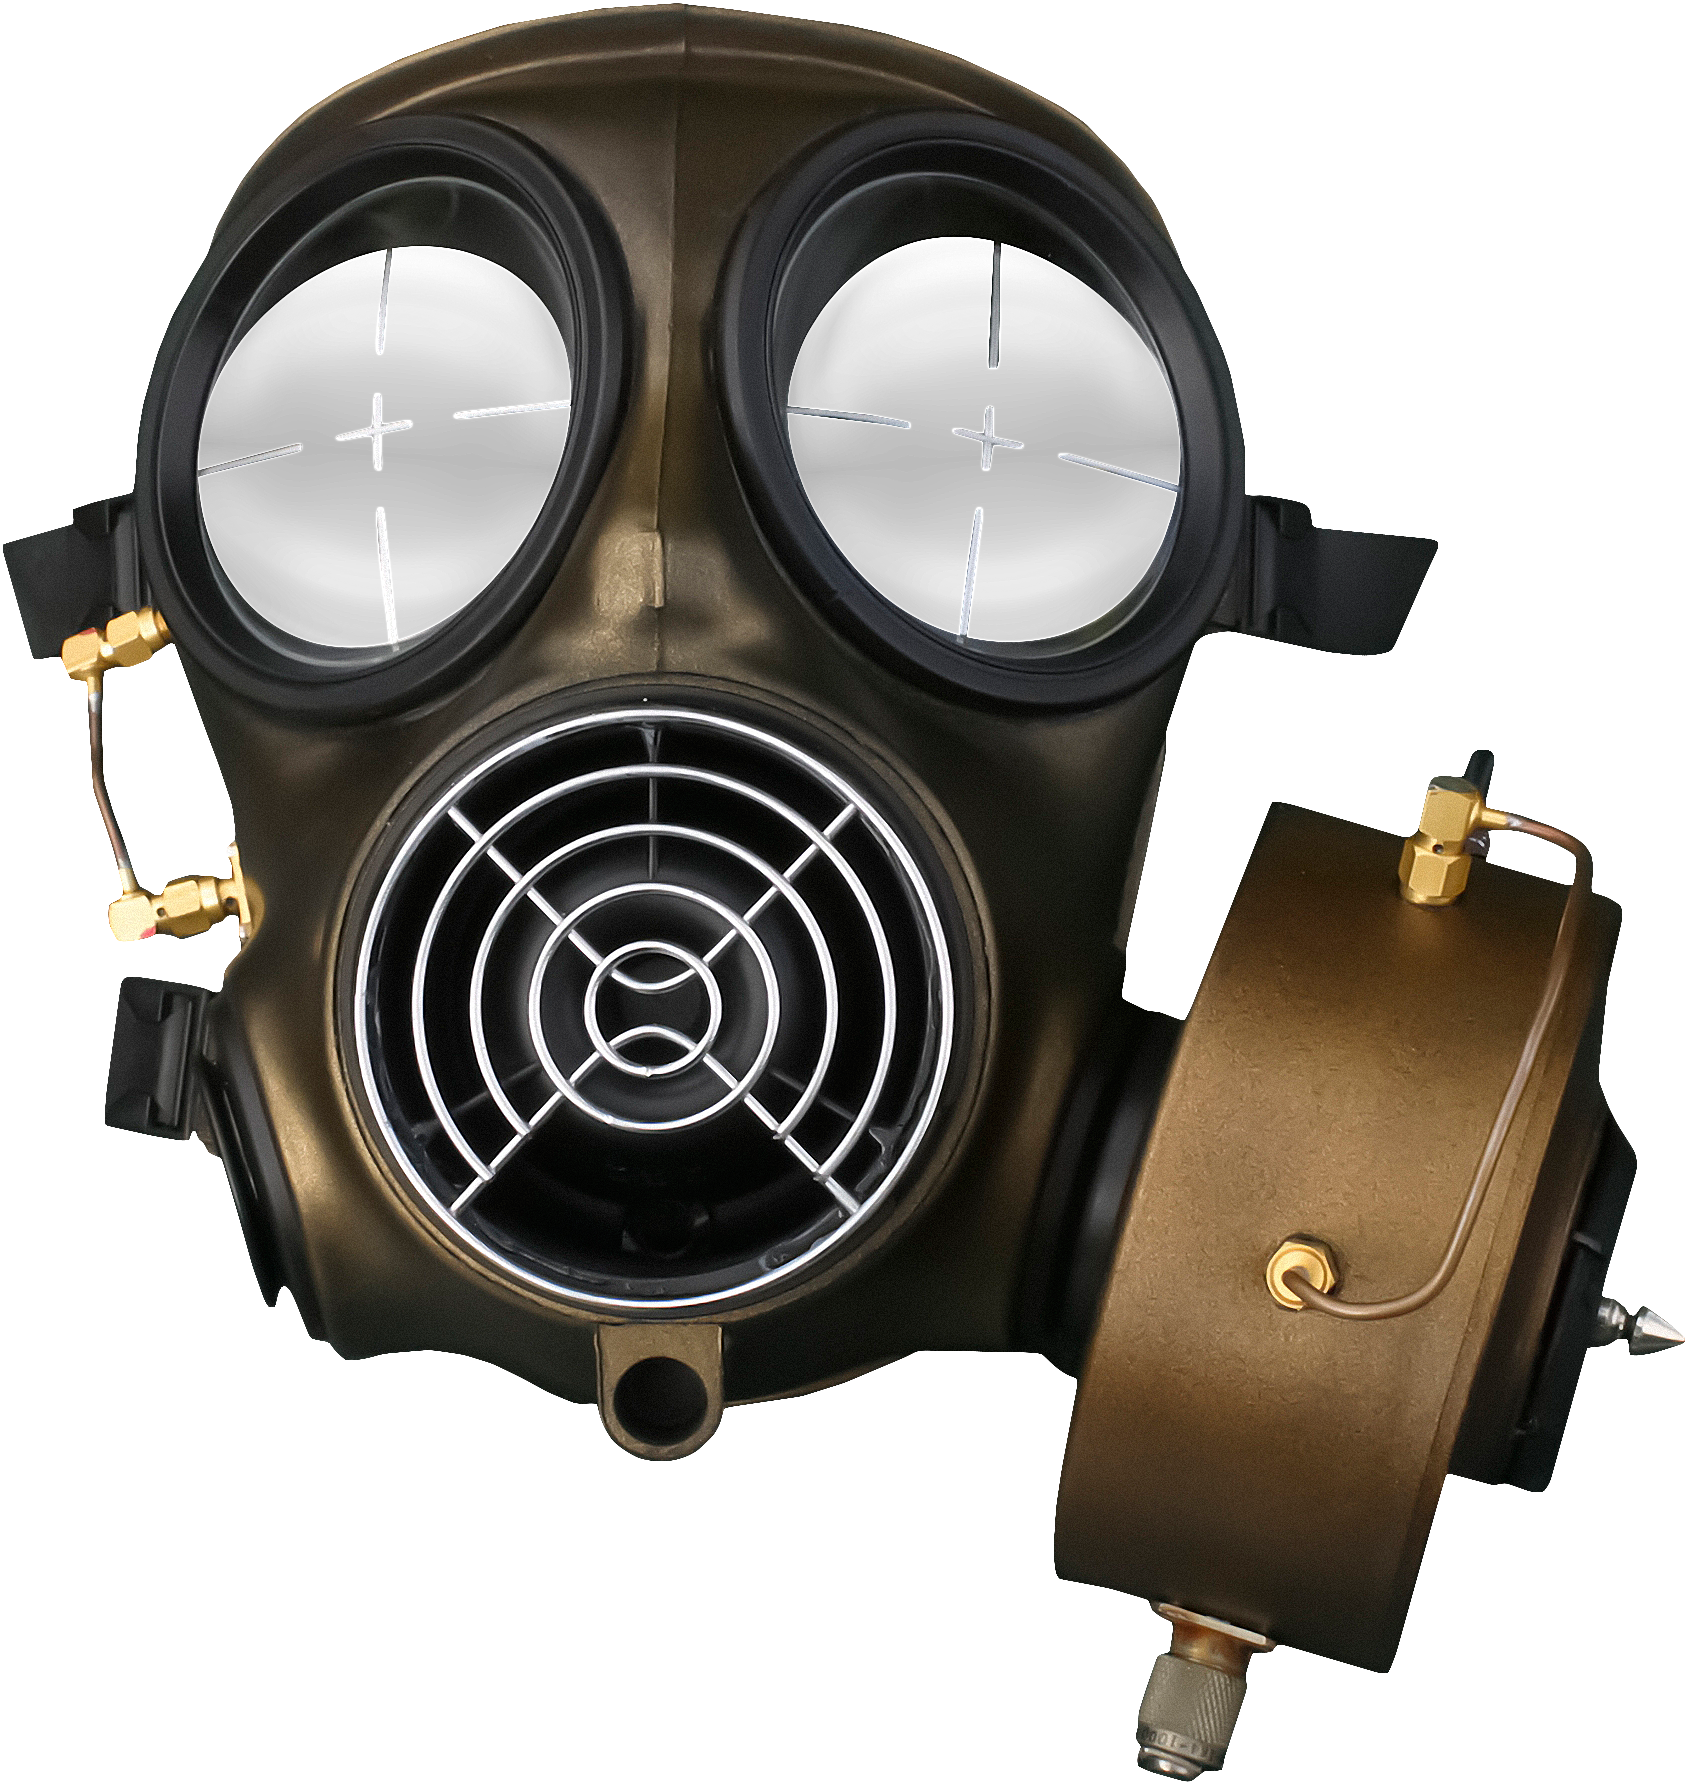 Gas Mask Png Image Gas Mask Gas Png